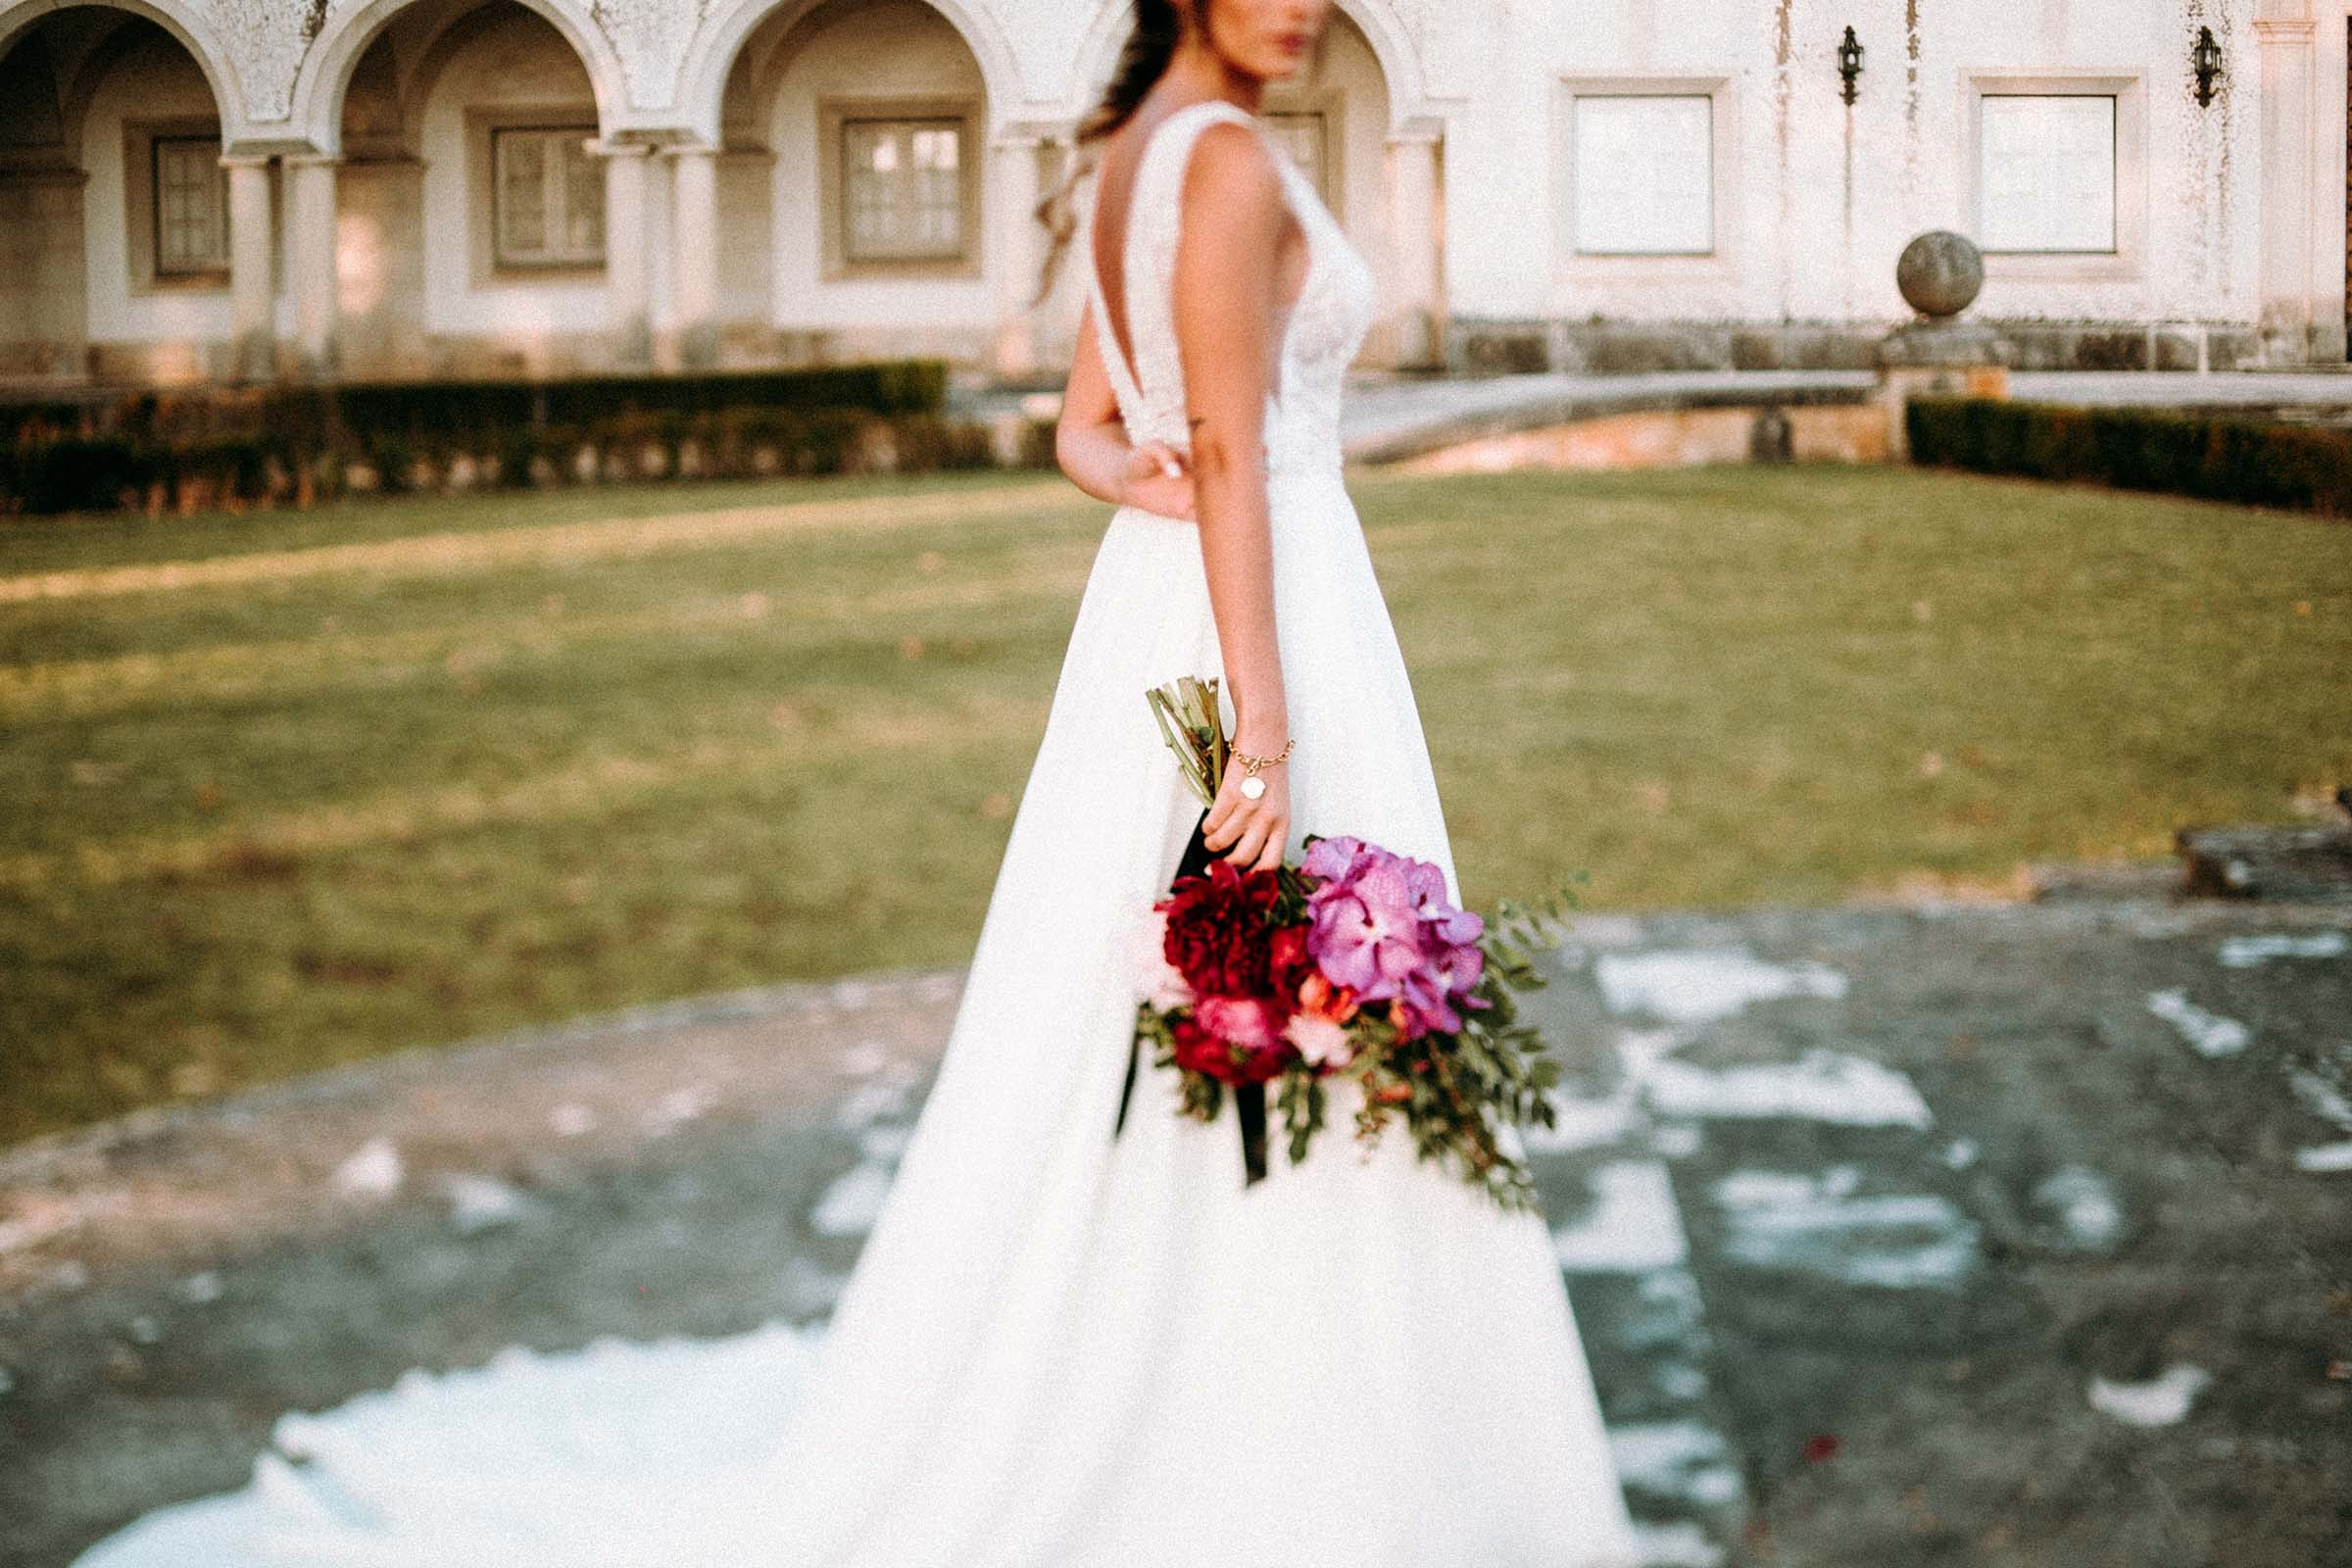 freelens photo of a bride holding a bouquet